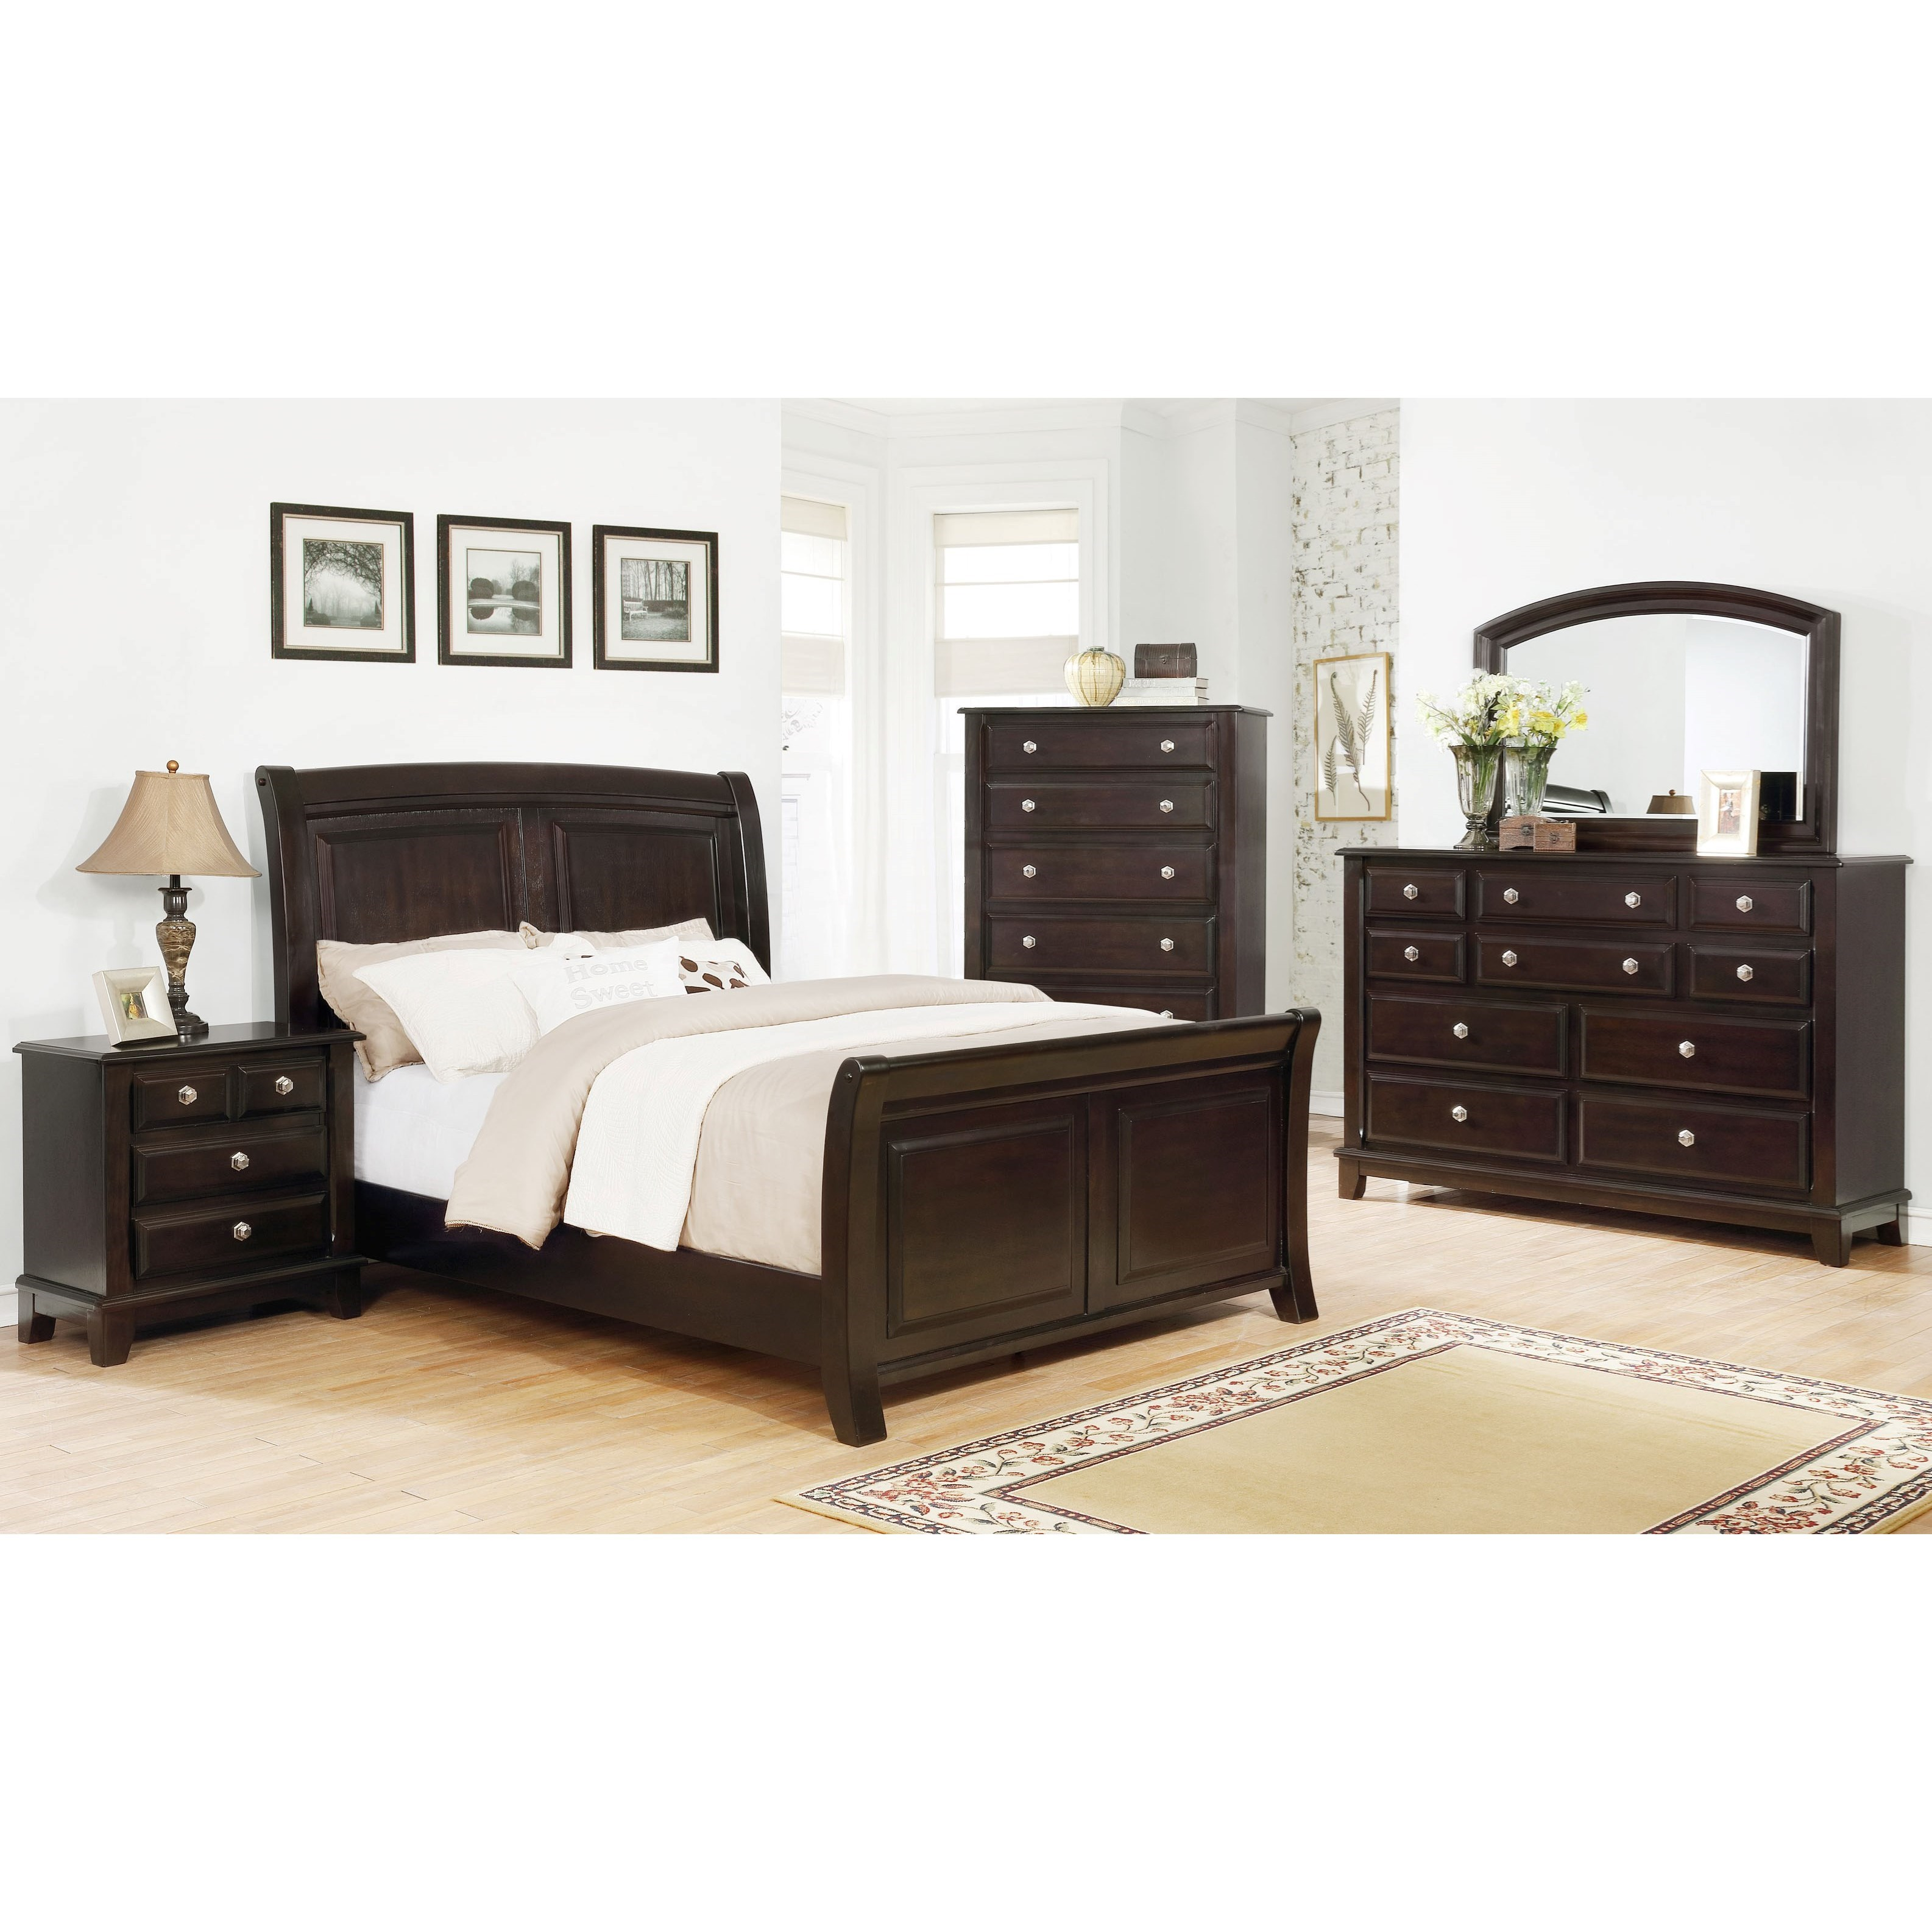 Kenton Queen Bedroom Group  by Crown Mark at Northeast Factory Direct